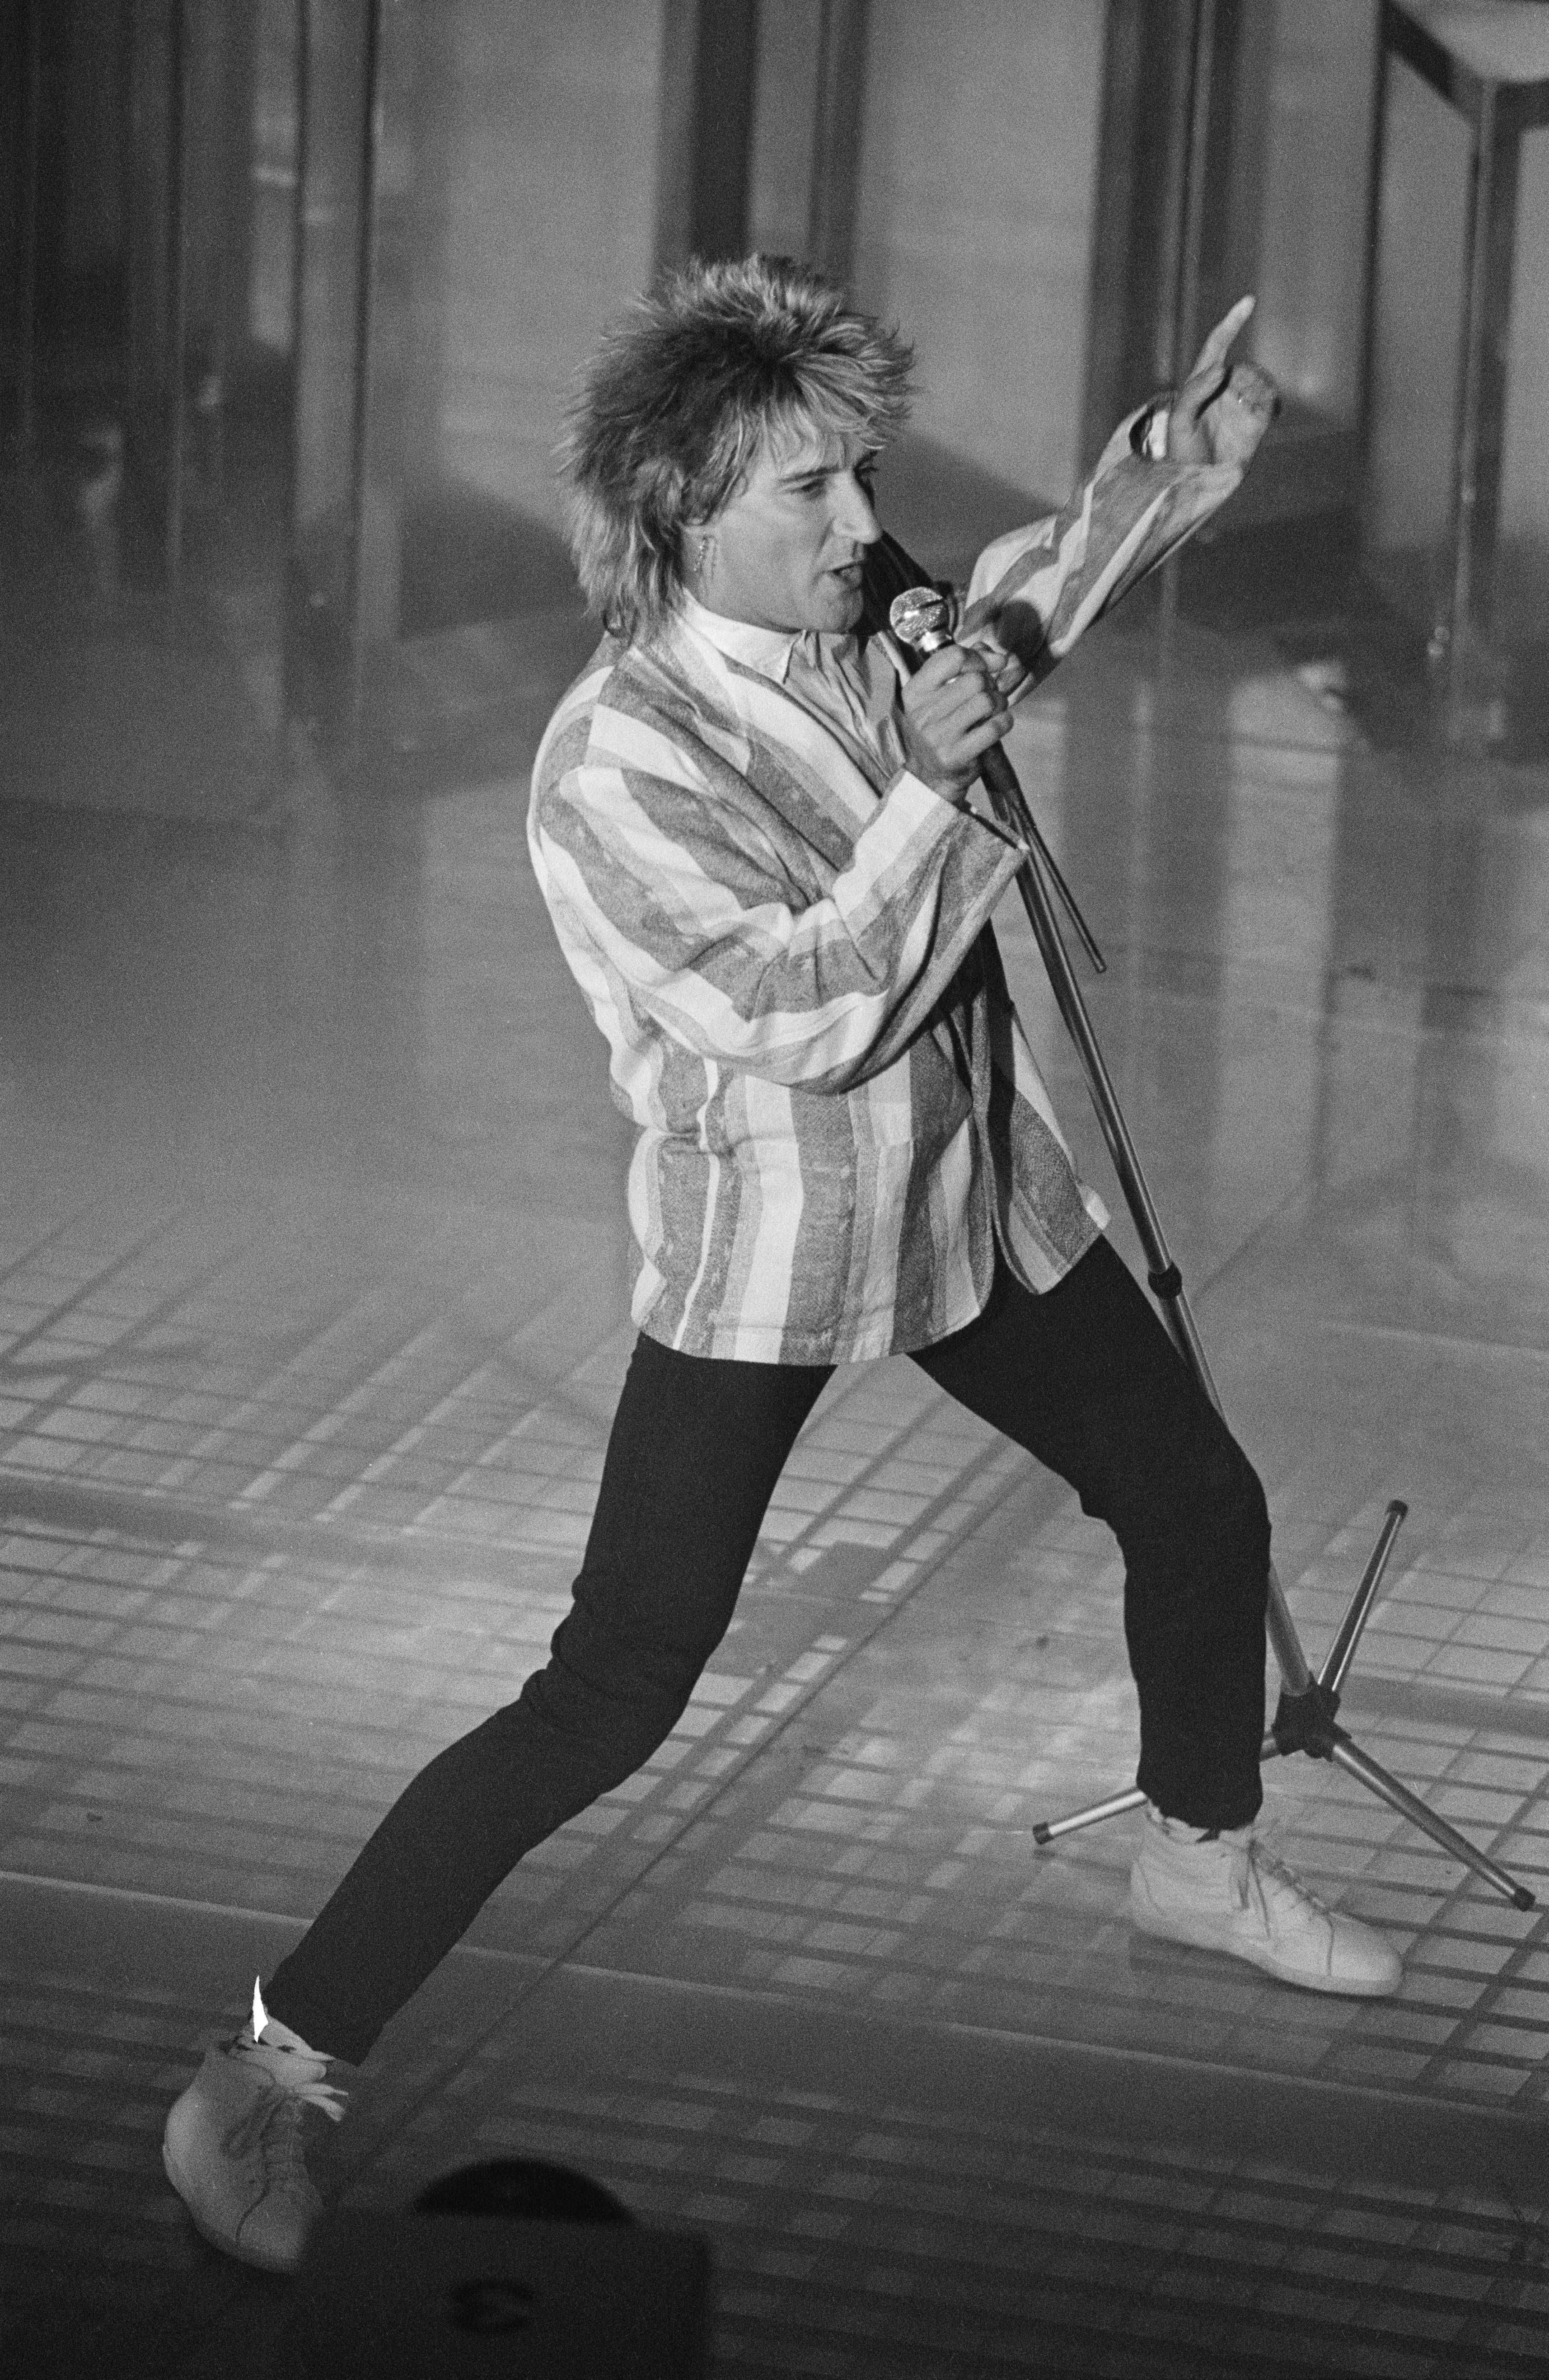 British singer, songwriter and musician Rod Stewart in concert, 15th May 1984. (Photo by P. Shirley/Express/Getty Images)